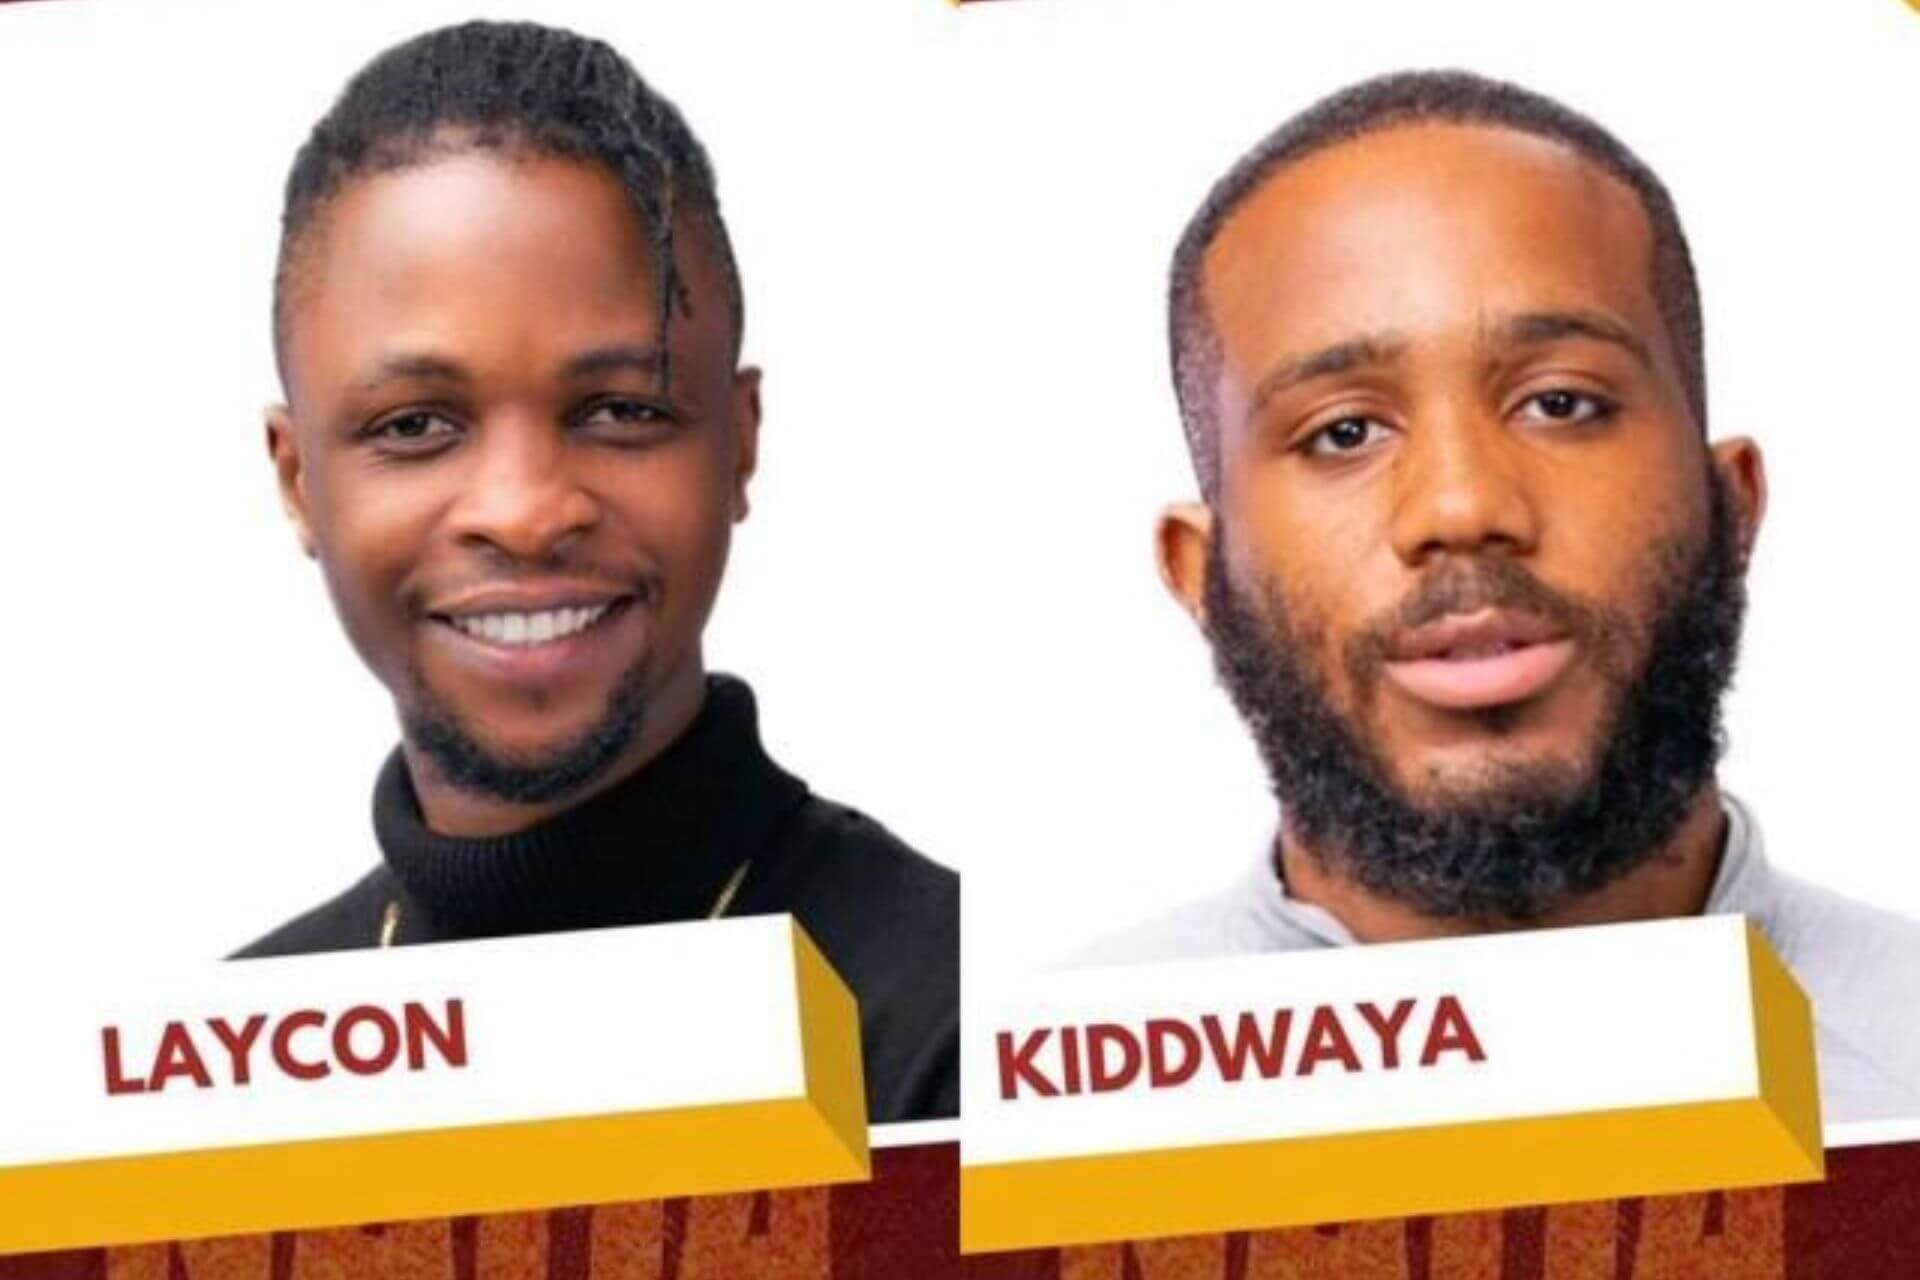 Big Brother Nigeria issues apology after publishing problematic article about Kiddwaya